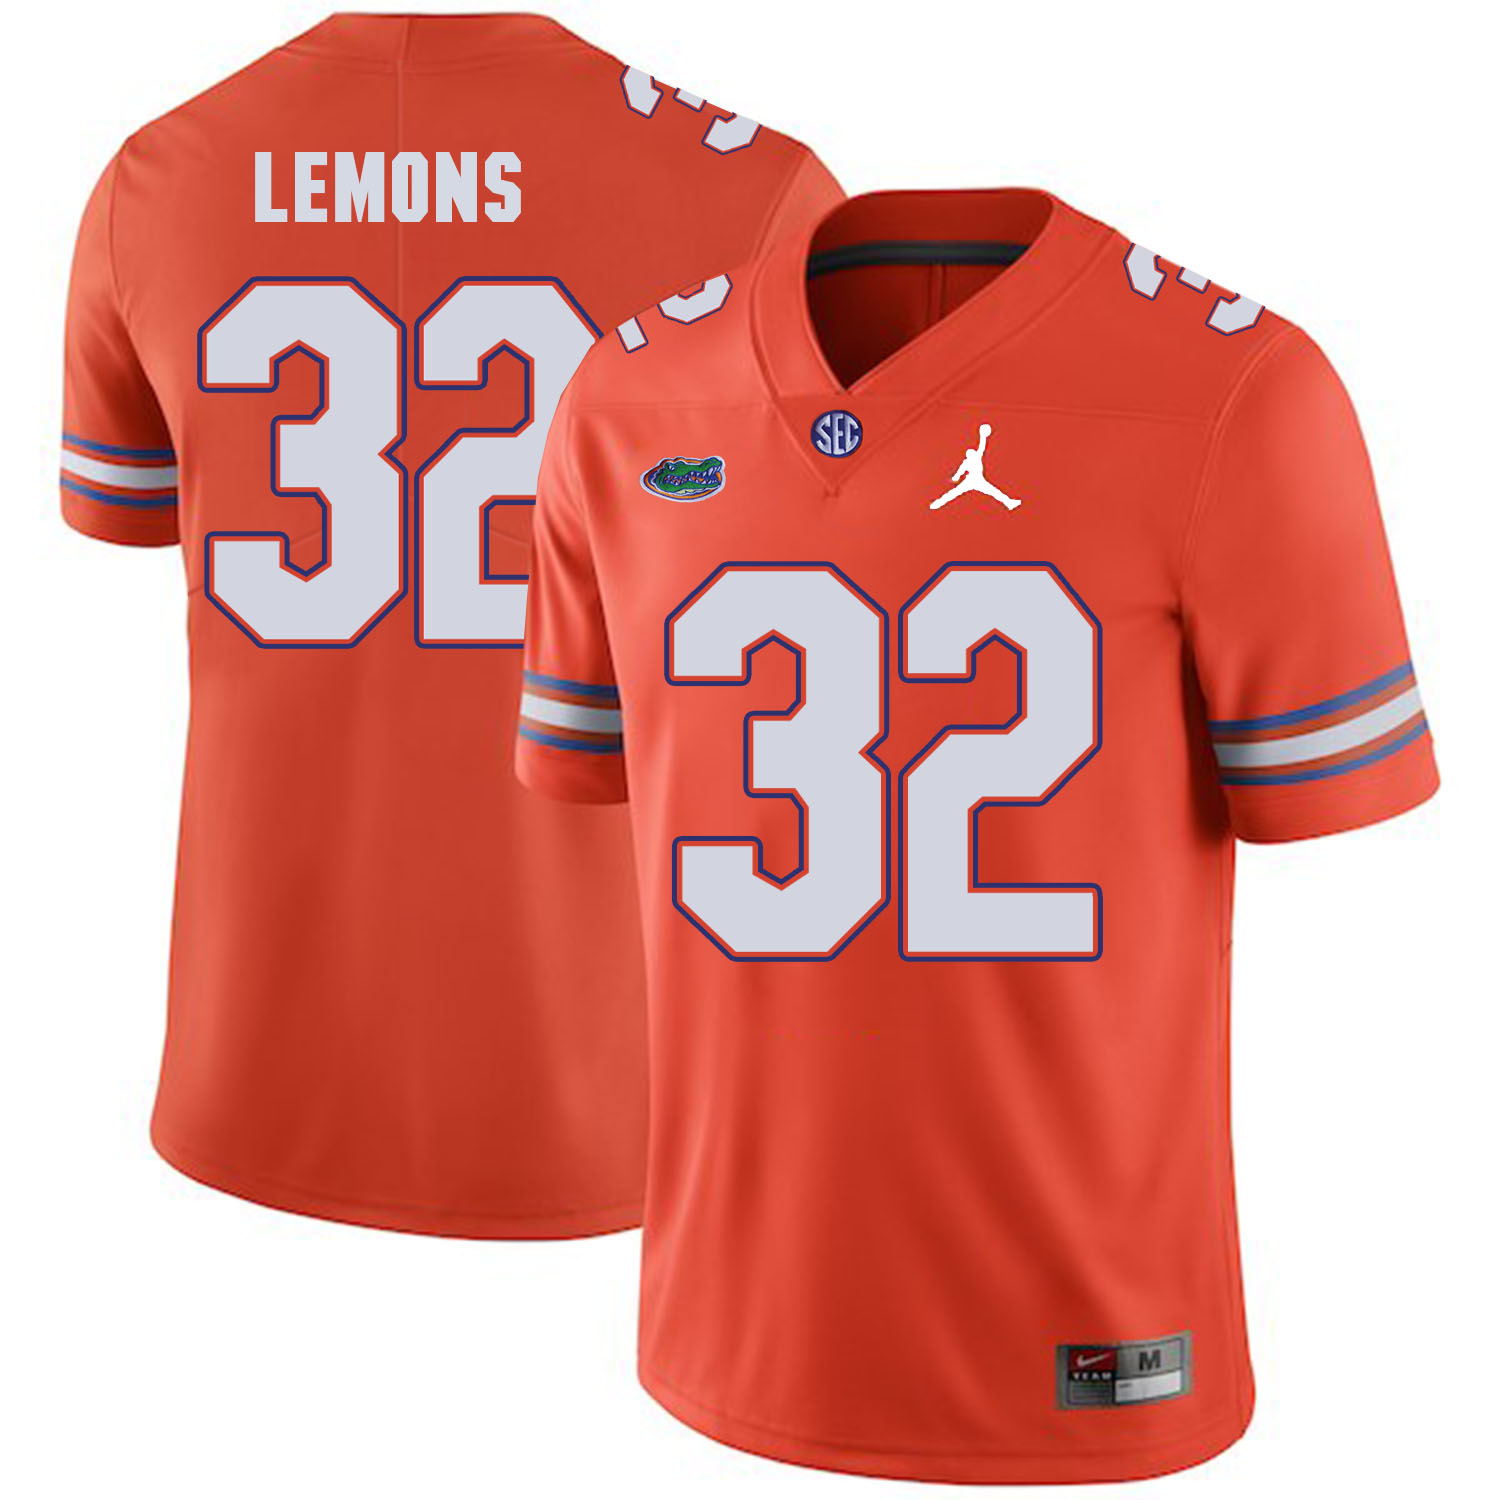 Florida Gators 32 Adarius Lemons Orange College Football Jersey